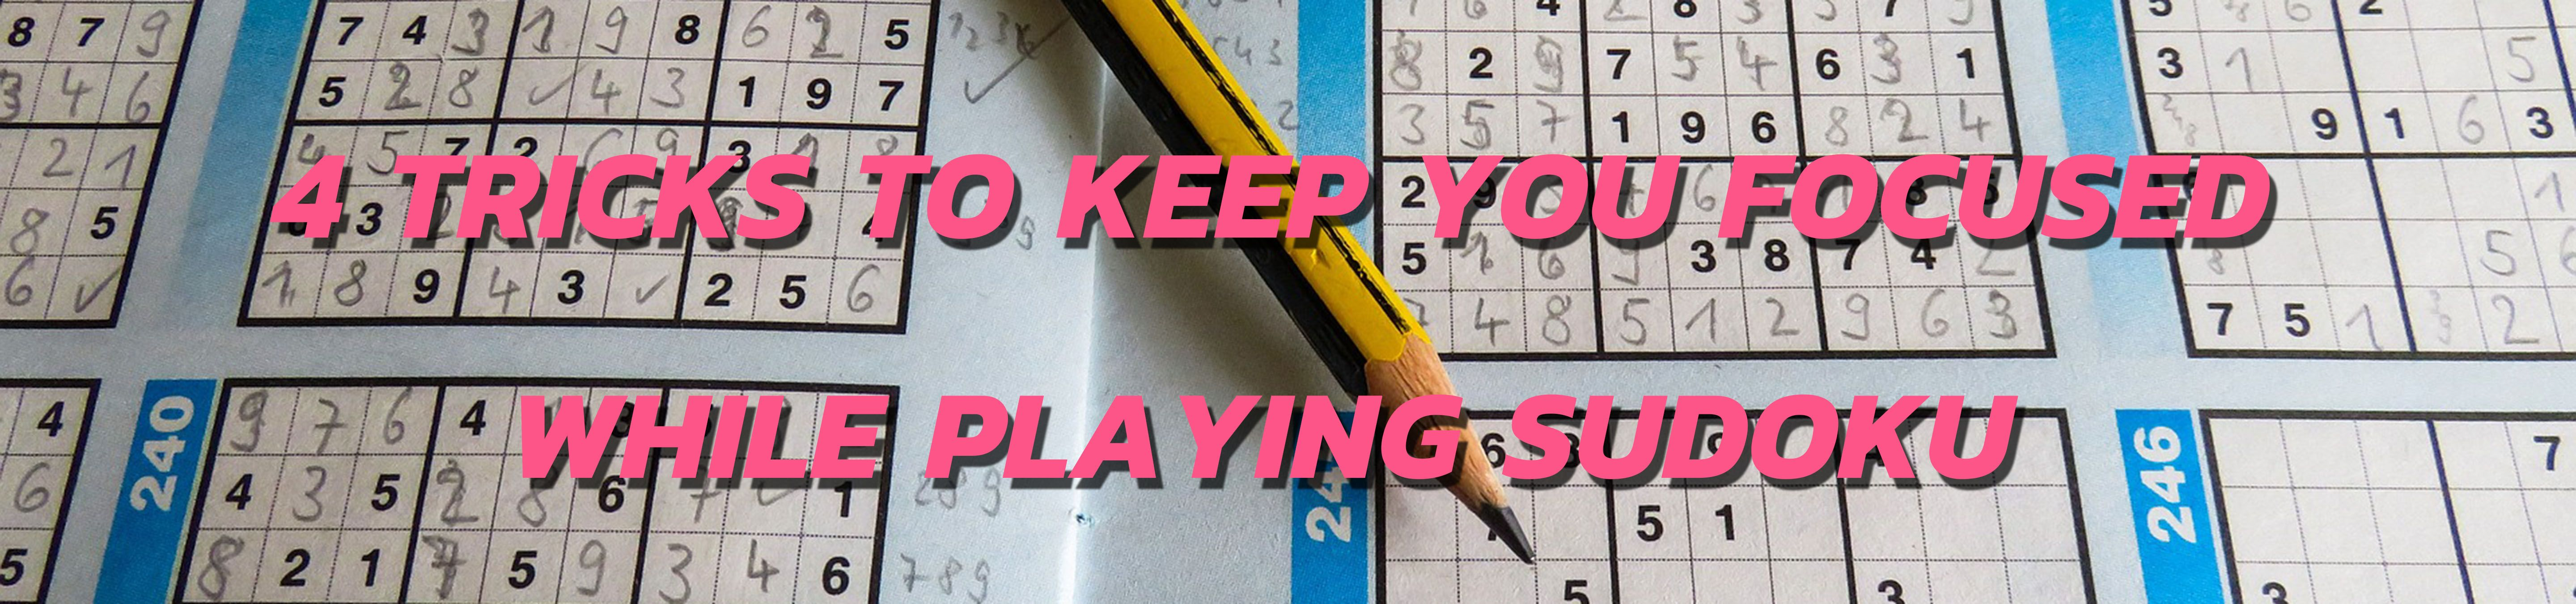 4 Tricks To Keep You Focused While Playing Sudoku INA 1